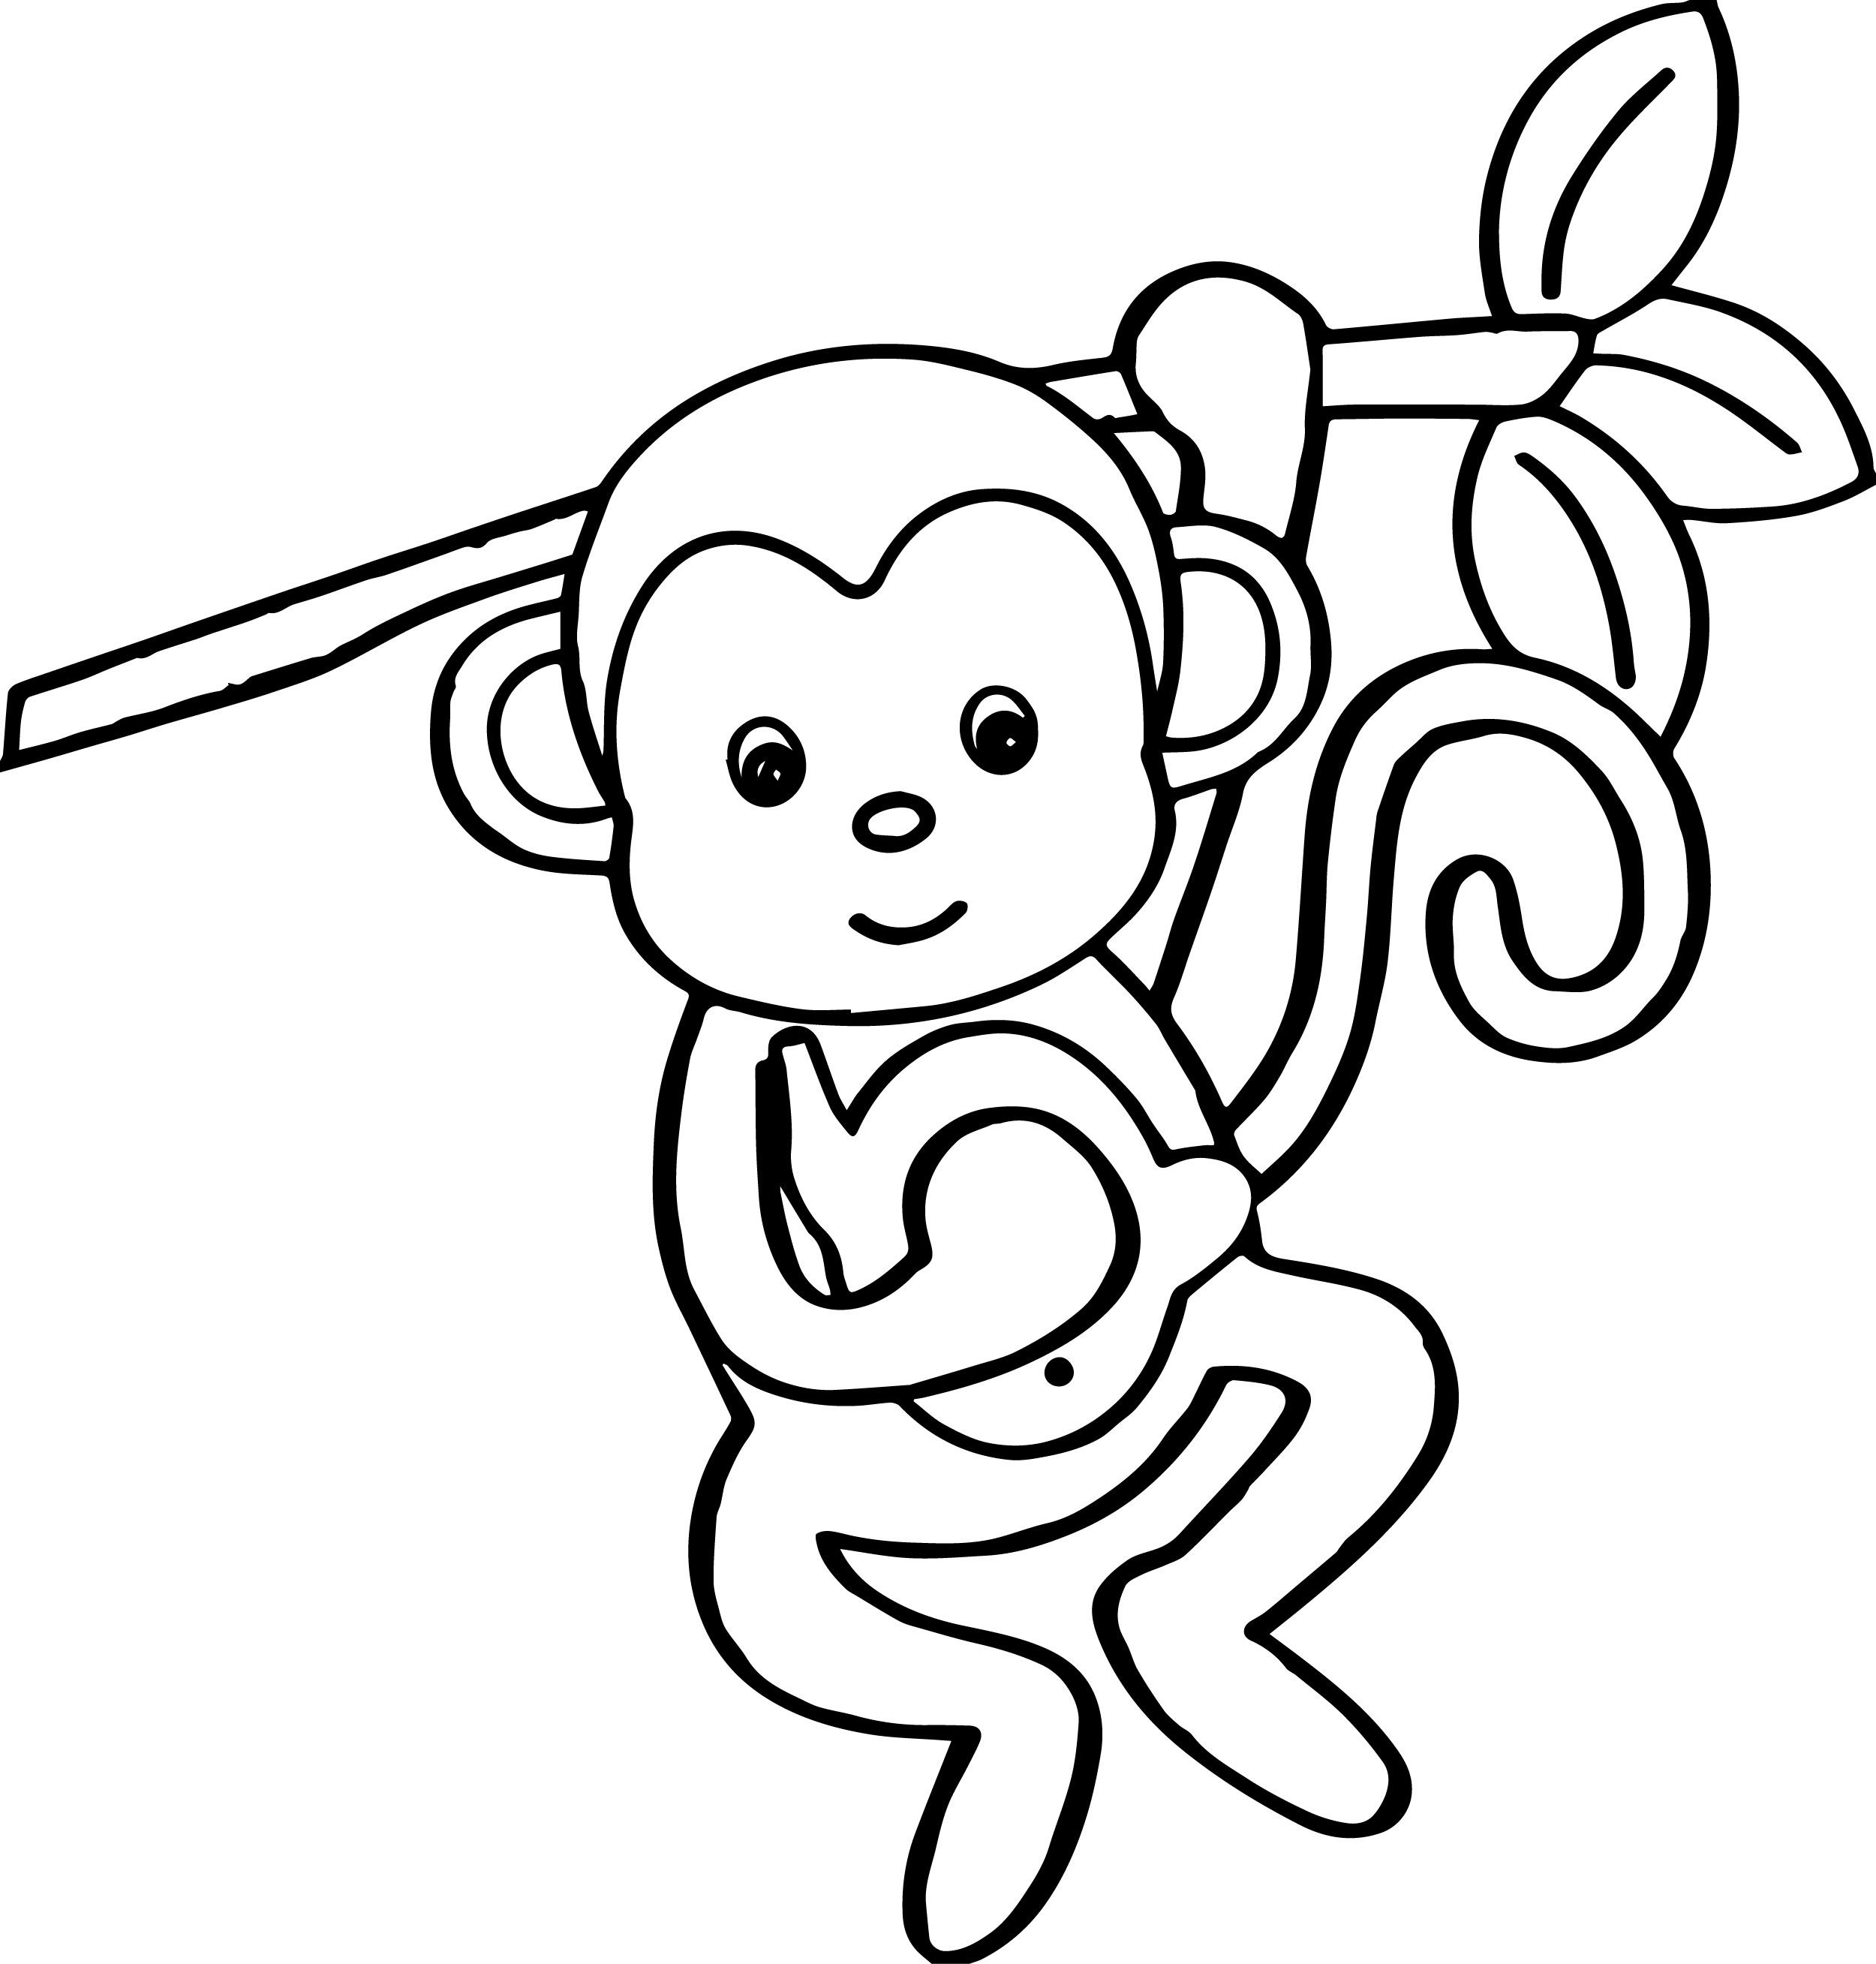 cool cartoon animals kids monkey coloring page vinyl monkey coloring pages baby coloring. Black Bedroom Furniture Sets. Home Design Ideas